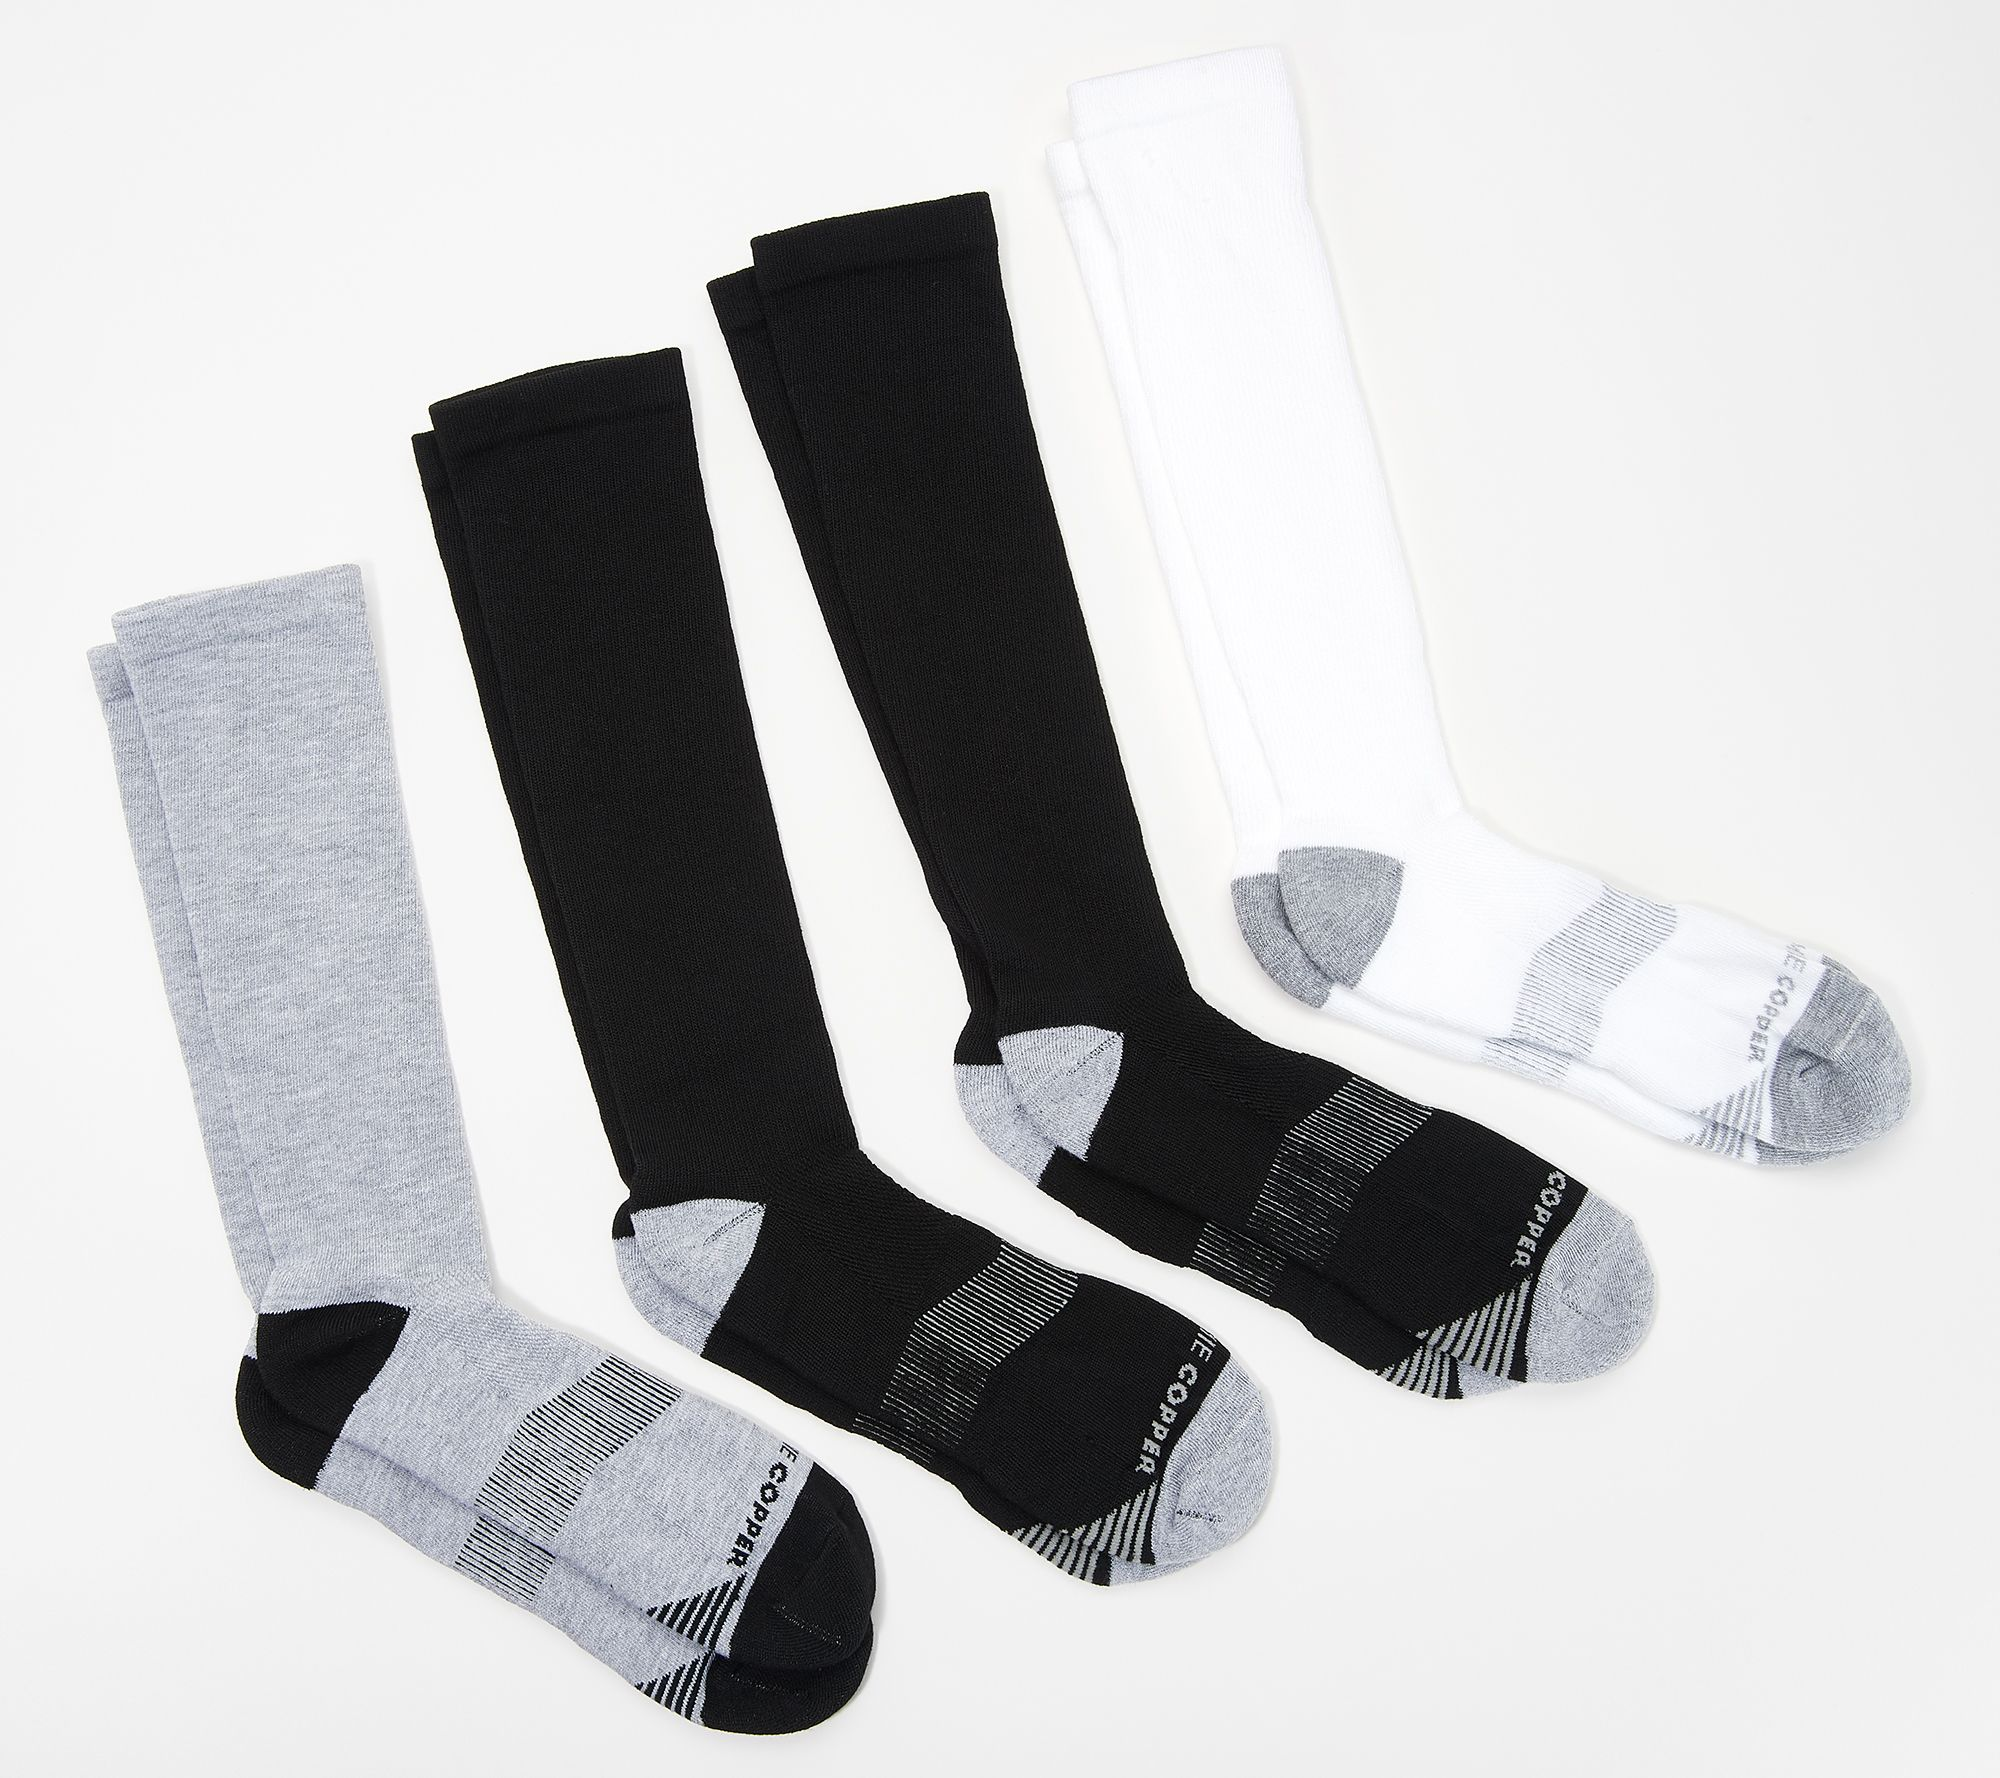 3a3a69ca30 Tommie Copper Men's 4-Pack Compression Over the Calf Socks - Page 1 — QVC .com